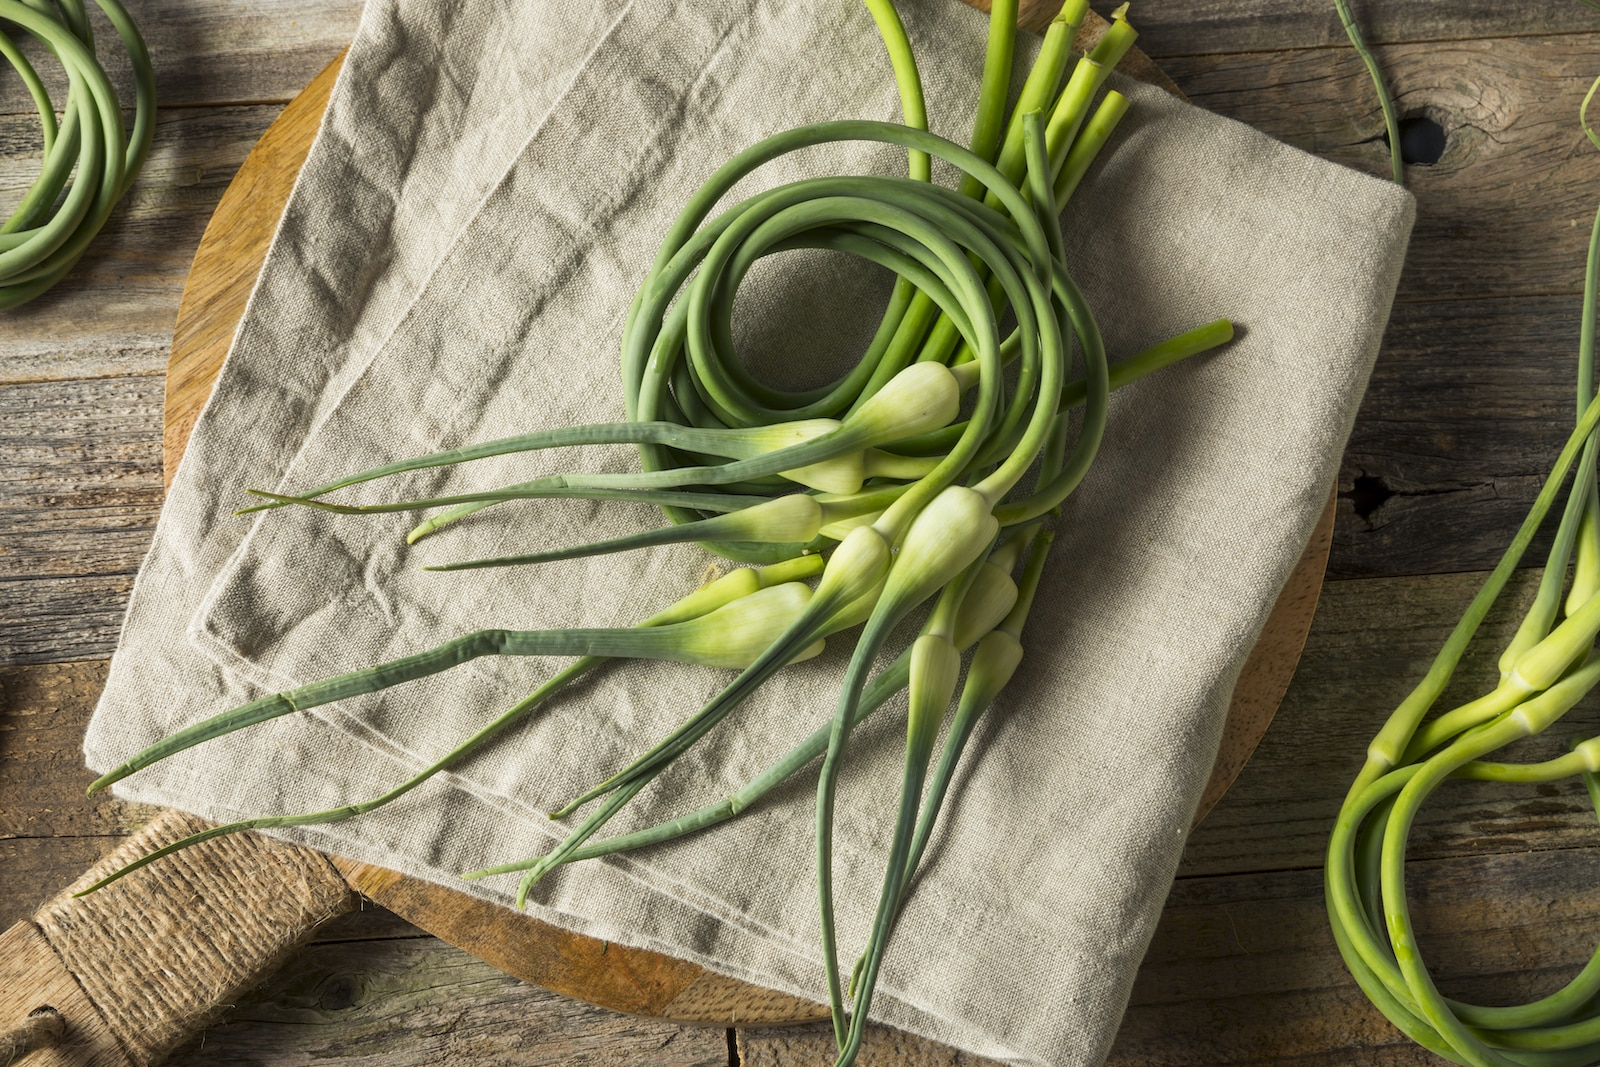 How To Store Garlic Scapes For The Best Flavor